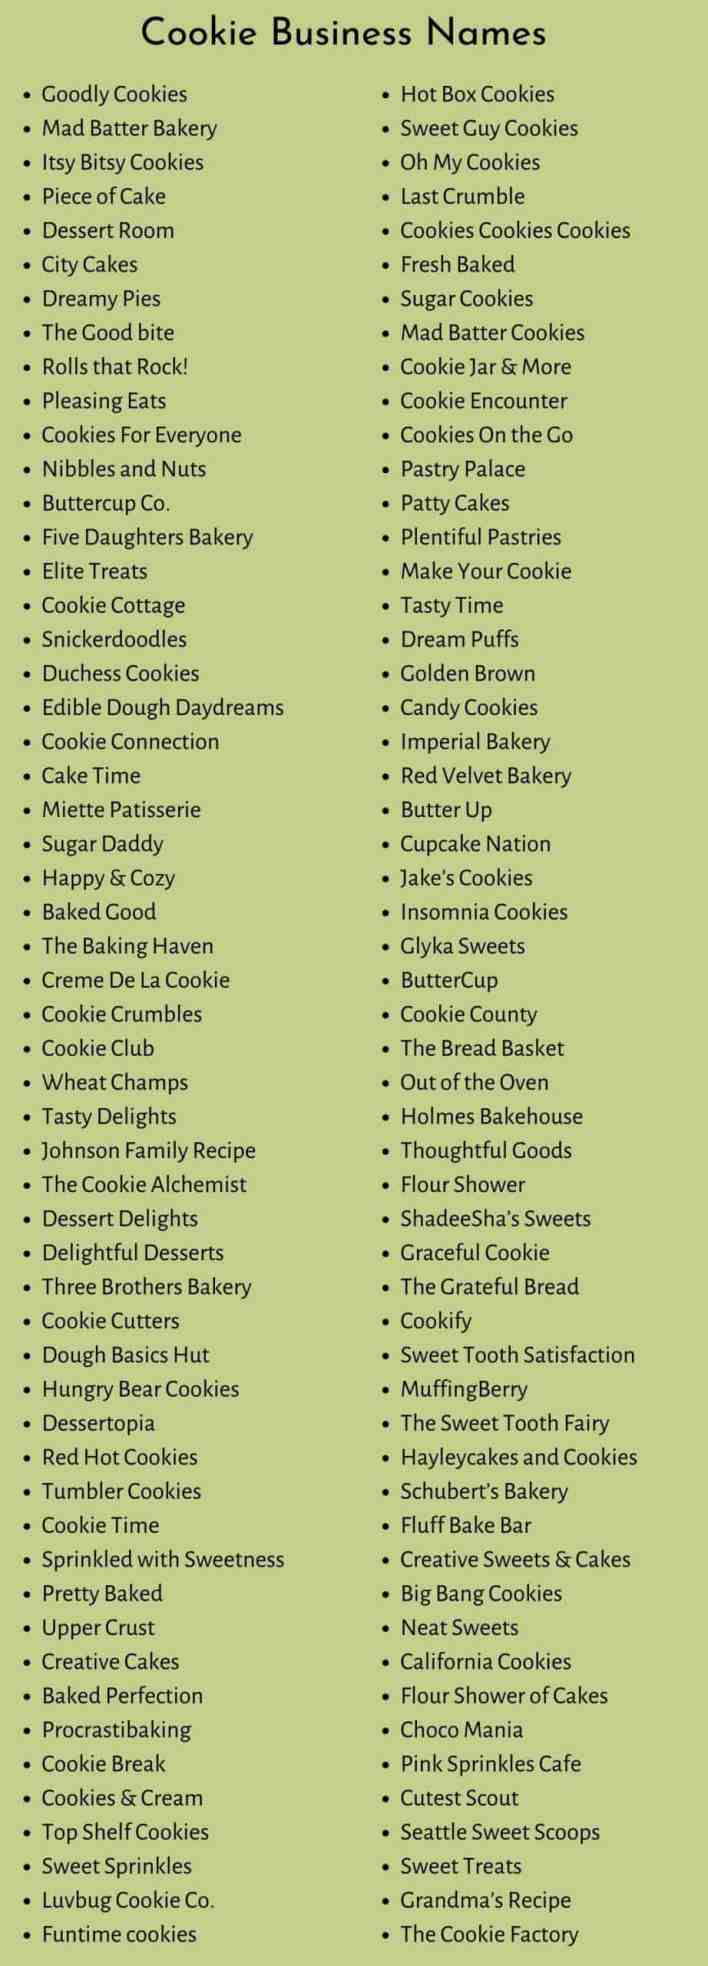 Cookie Business Names